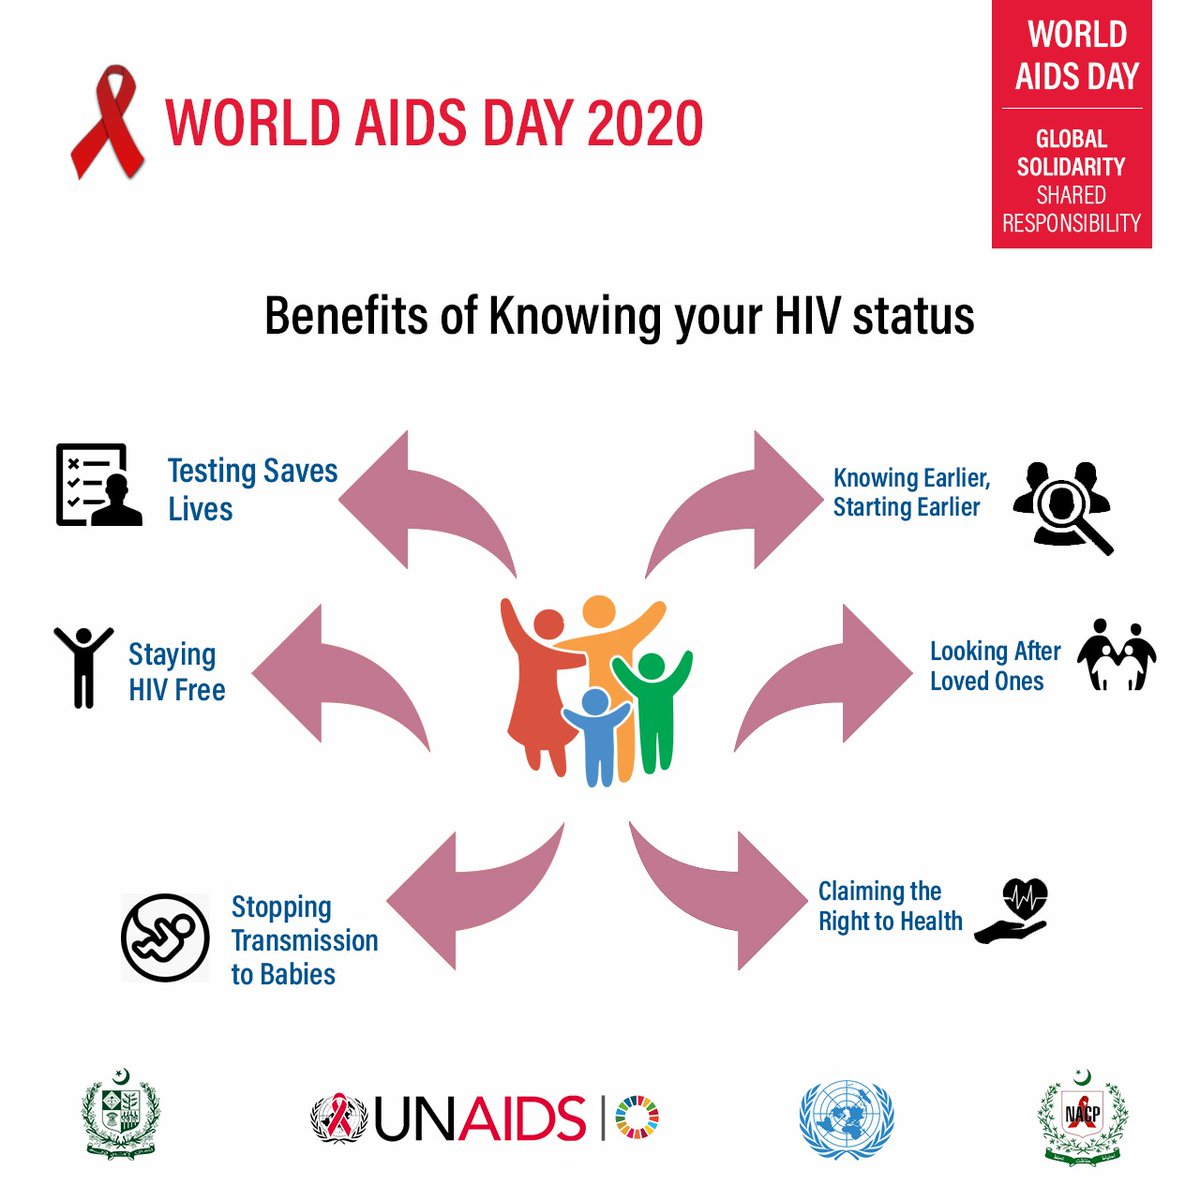 Shocking number of 12 million people are still waiting to get on HIV treatment and 1.7 million people became infected with HIV in 2019 because they could not access essential services. Here are some benefits of knowing your HIV status 👇👇 #WAD2020Pak